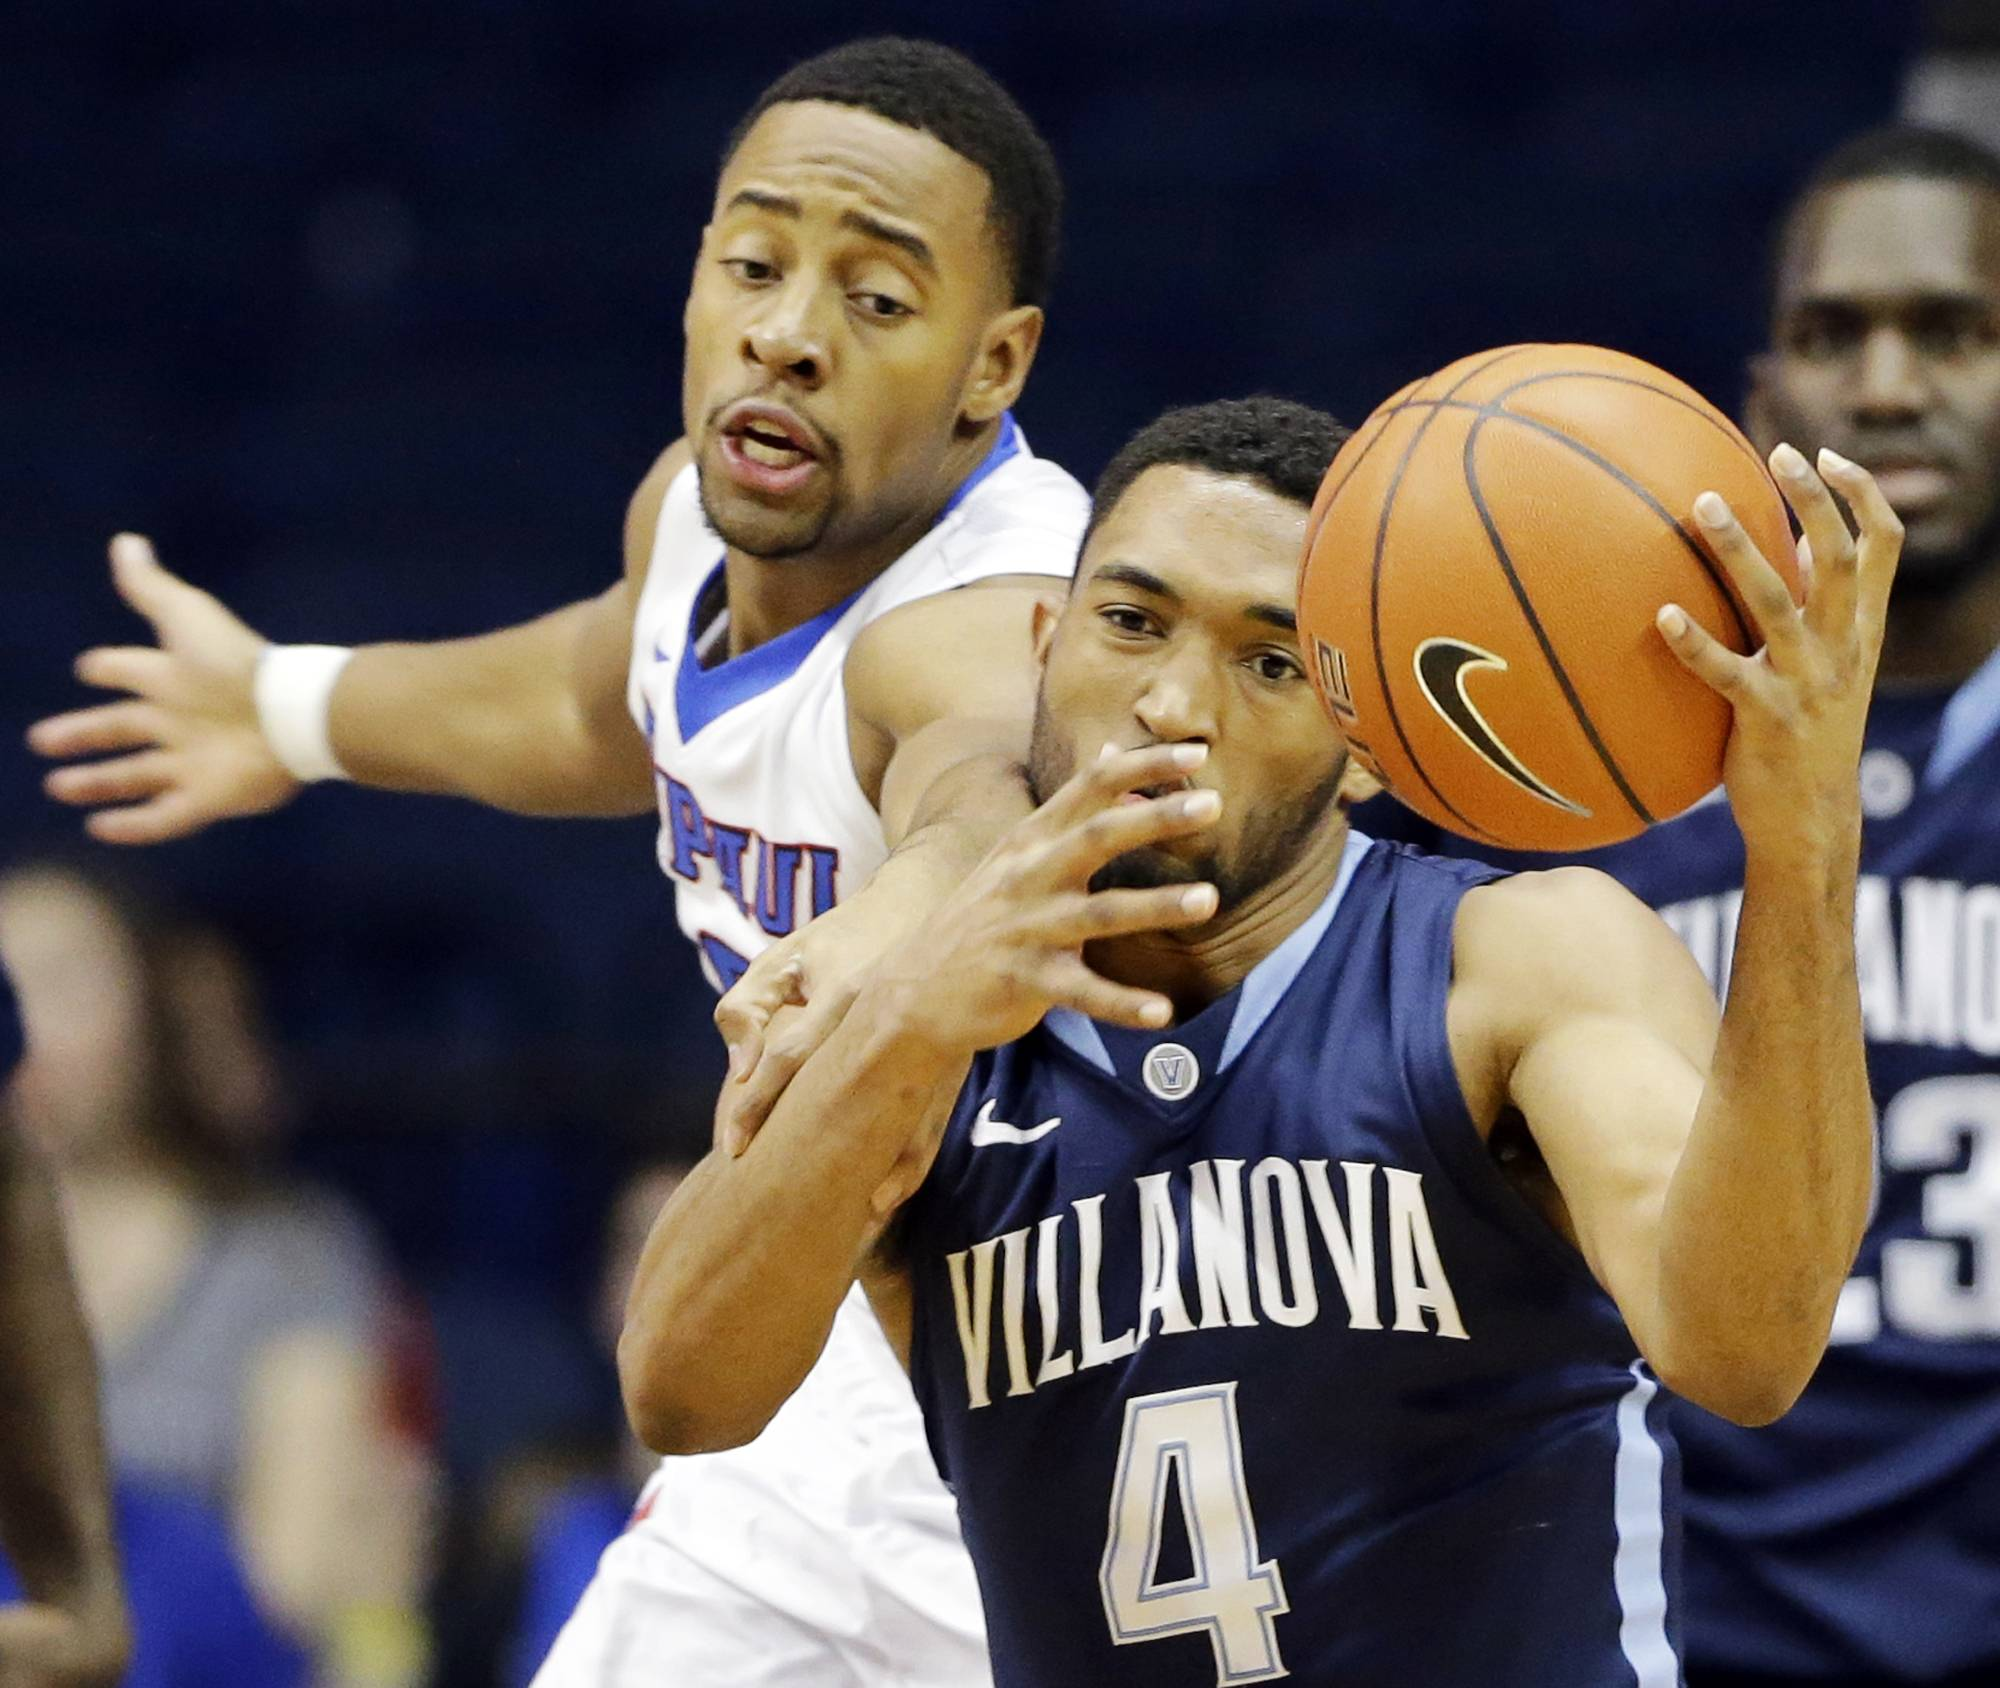 Villanova guard Darrun Hilliard (4) rebounds the ball against DePaul guard R.J. Curington during Wednesday night's game in Rosemont.